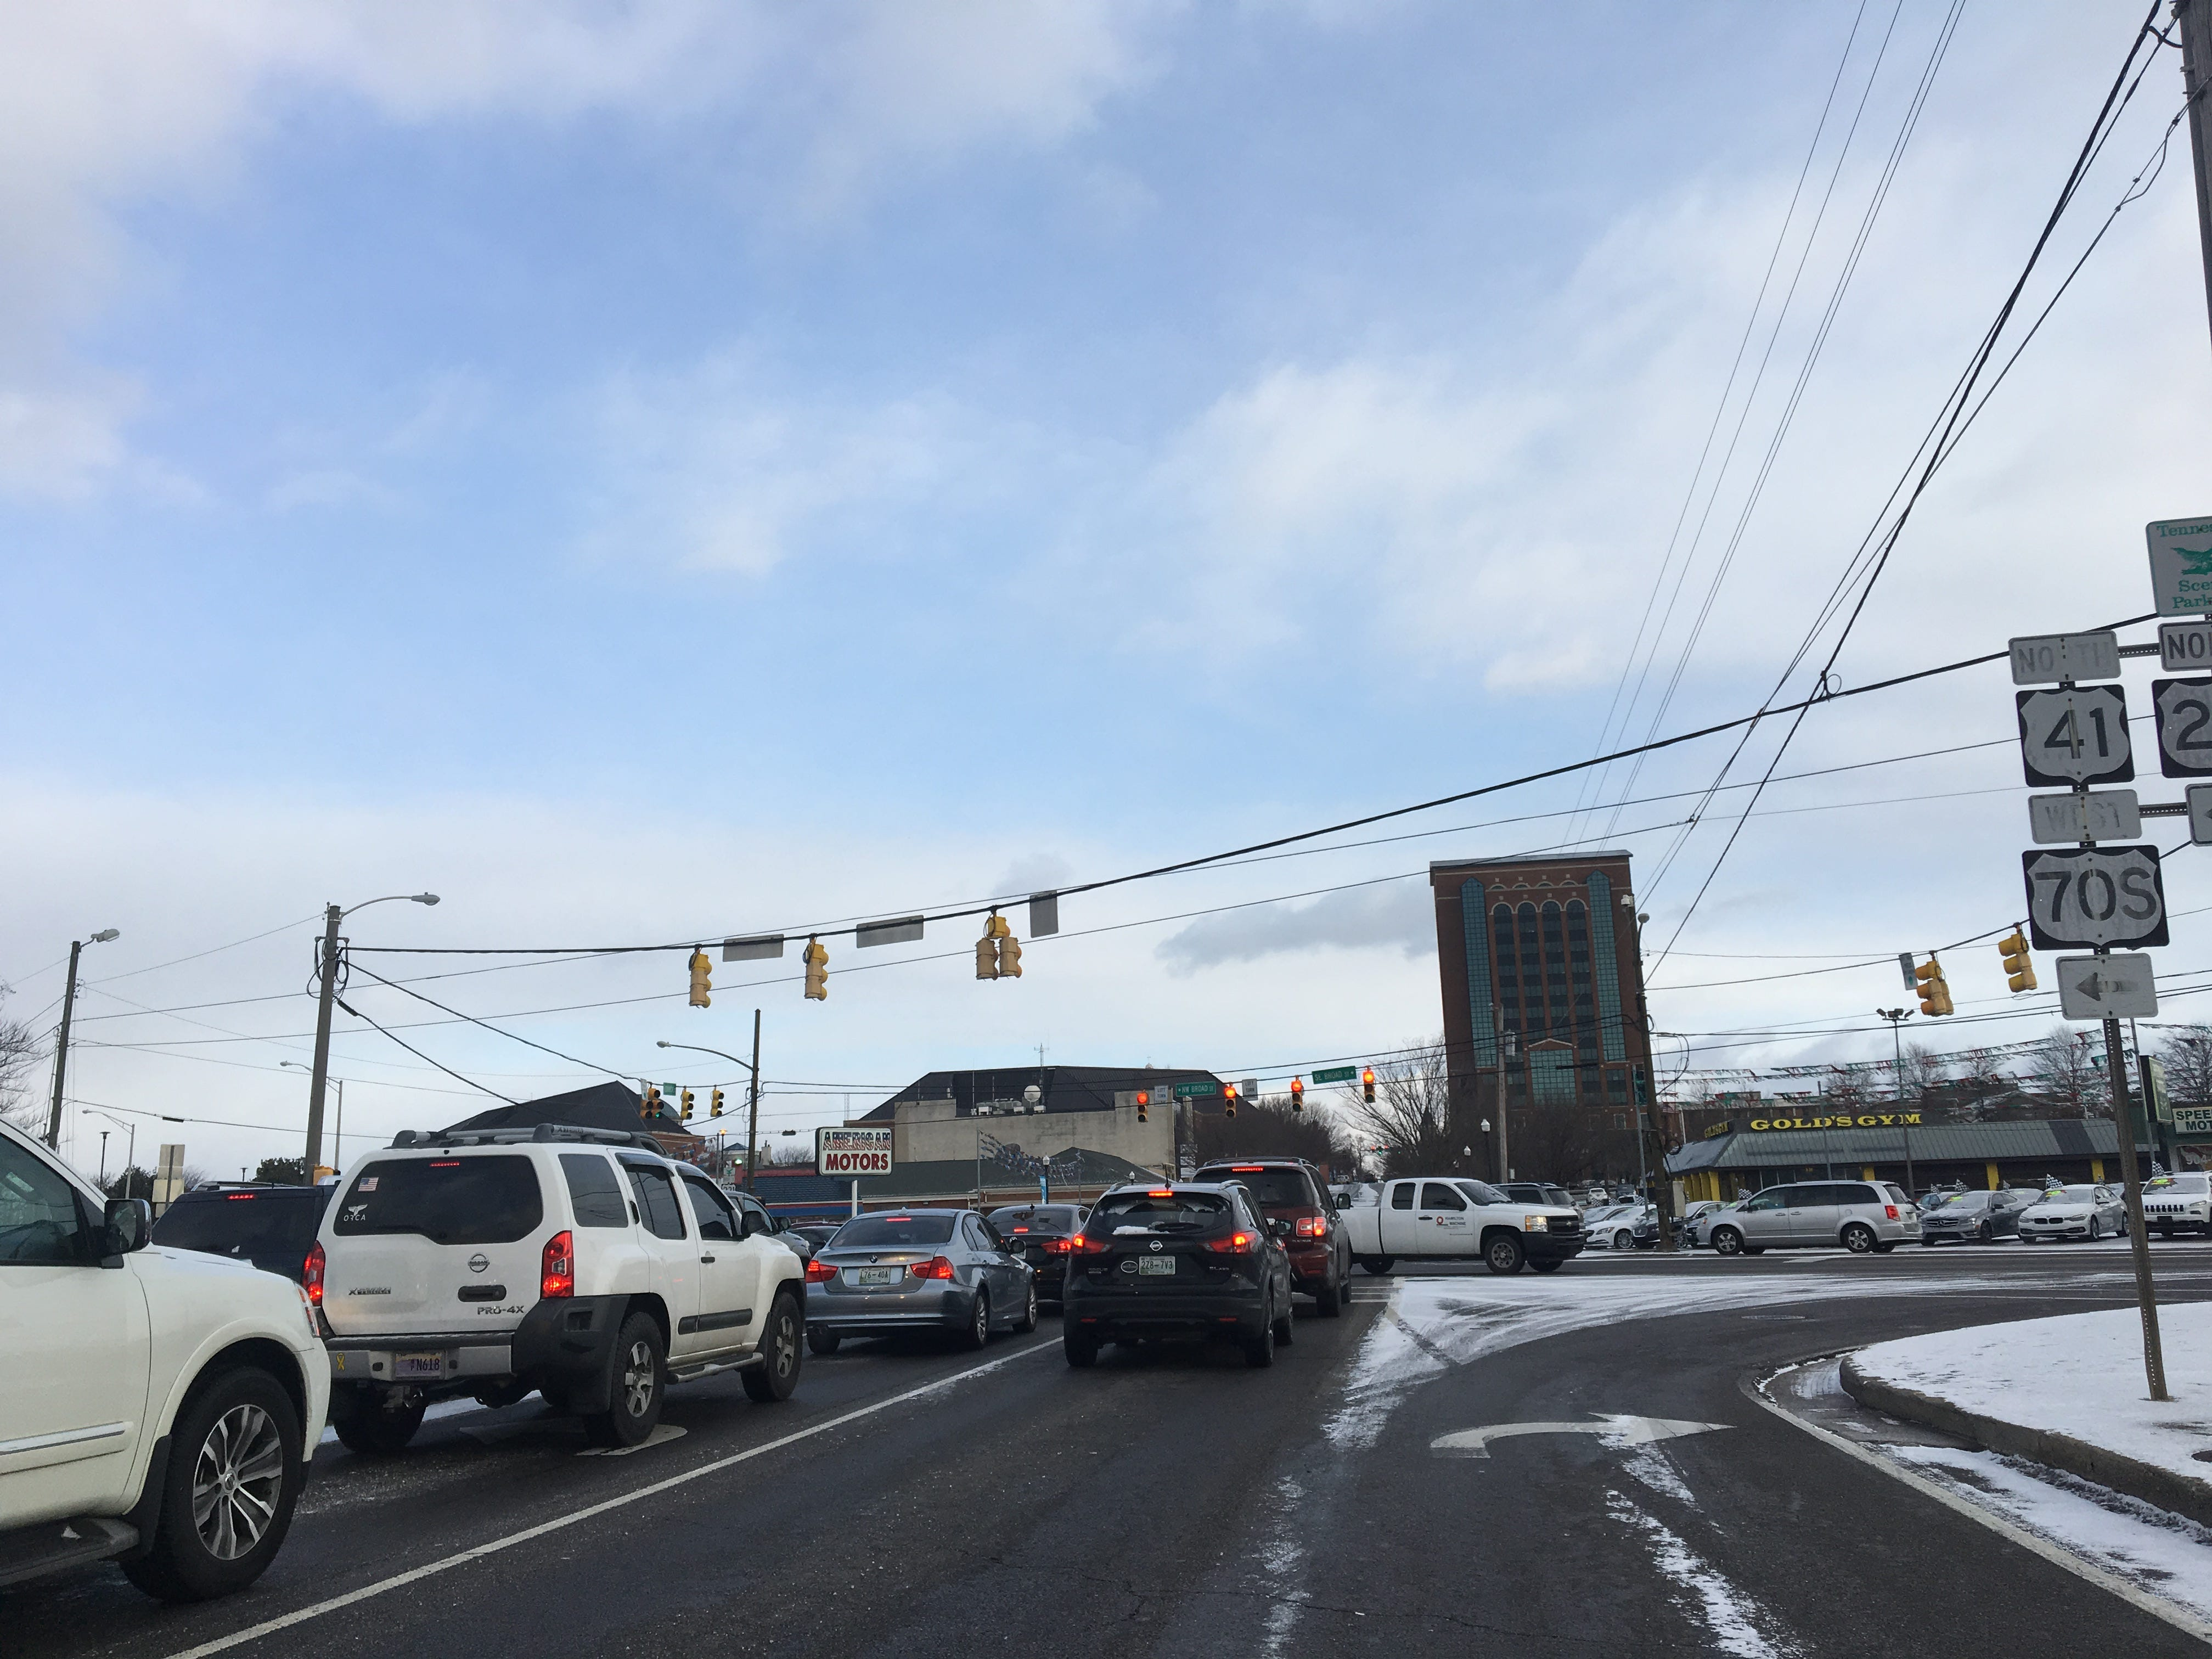 Major roads, such as South Church Street and Broad Street were safe to travel despite snow on Wednesday, Jan. 30, 2019.